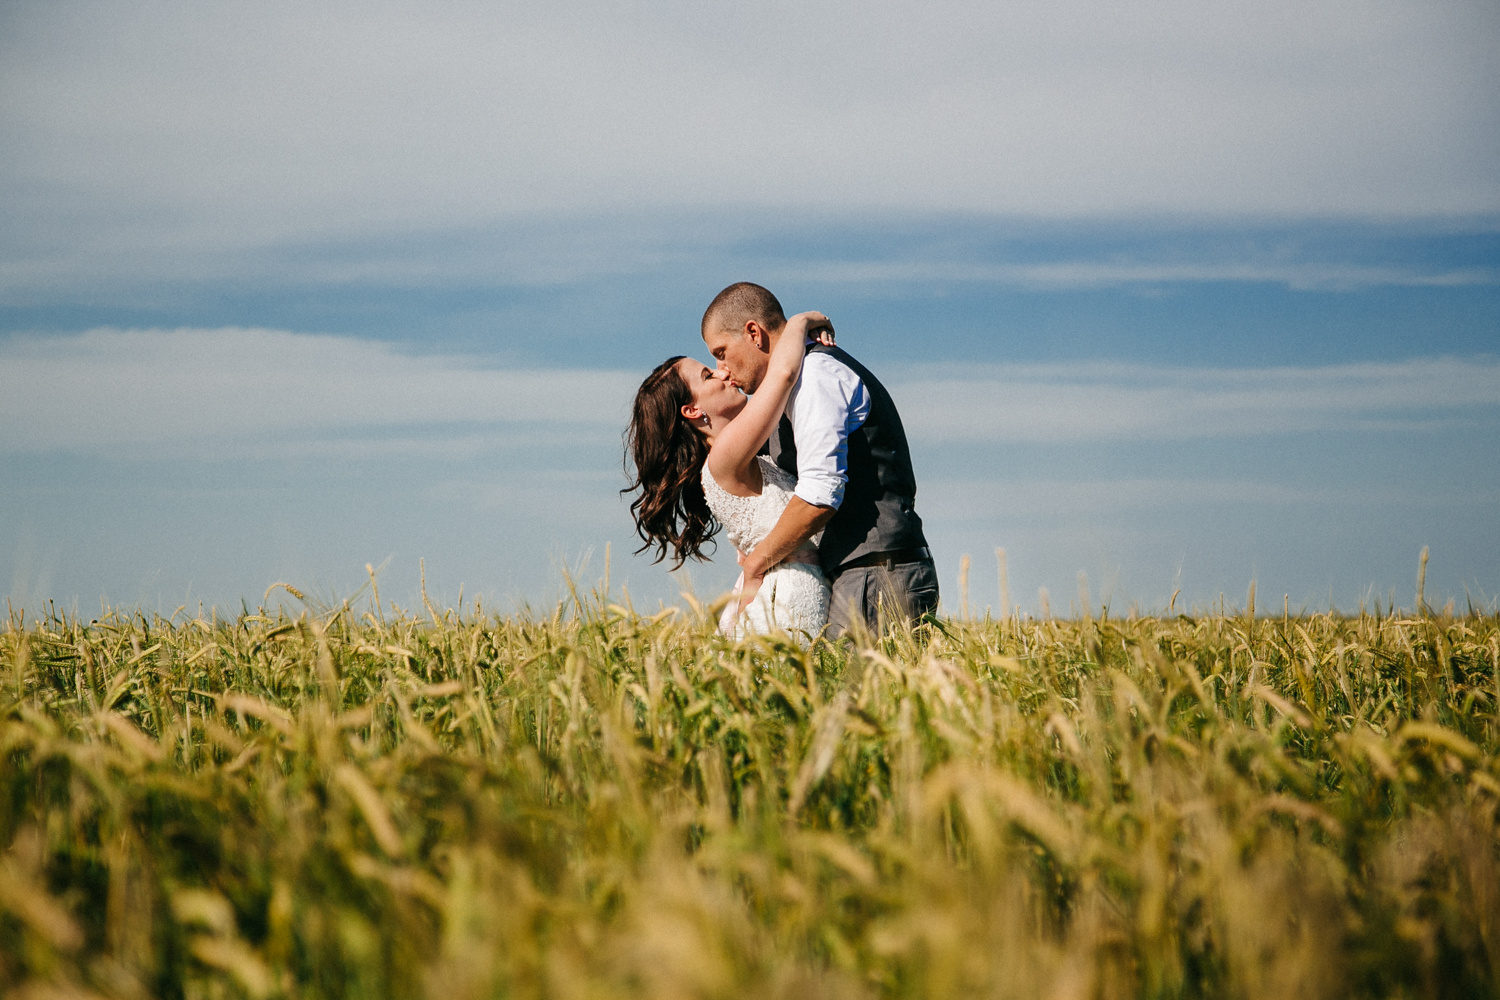 lethbridge-wedding-photography-love-and-be-loved-photographers-ashlin-anne-backyard-wedding-image-picture-photo-313.jpg